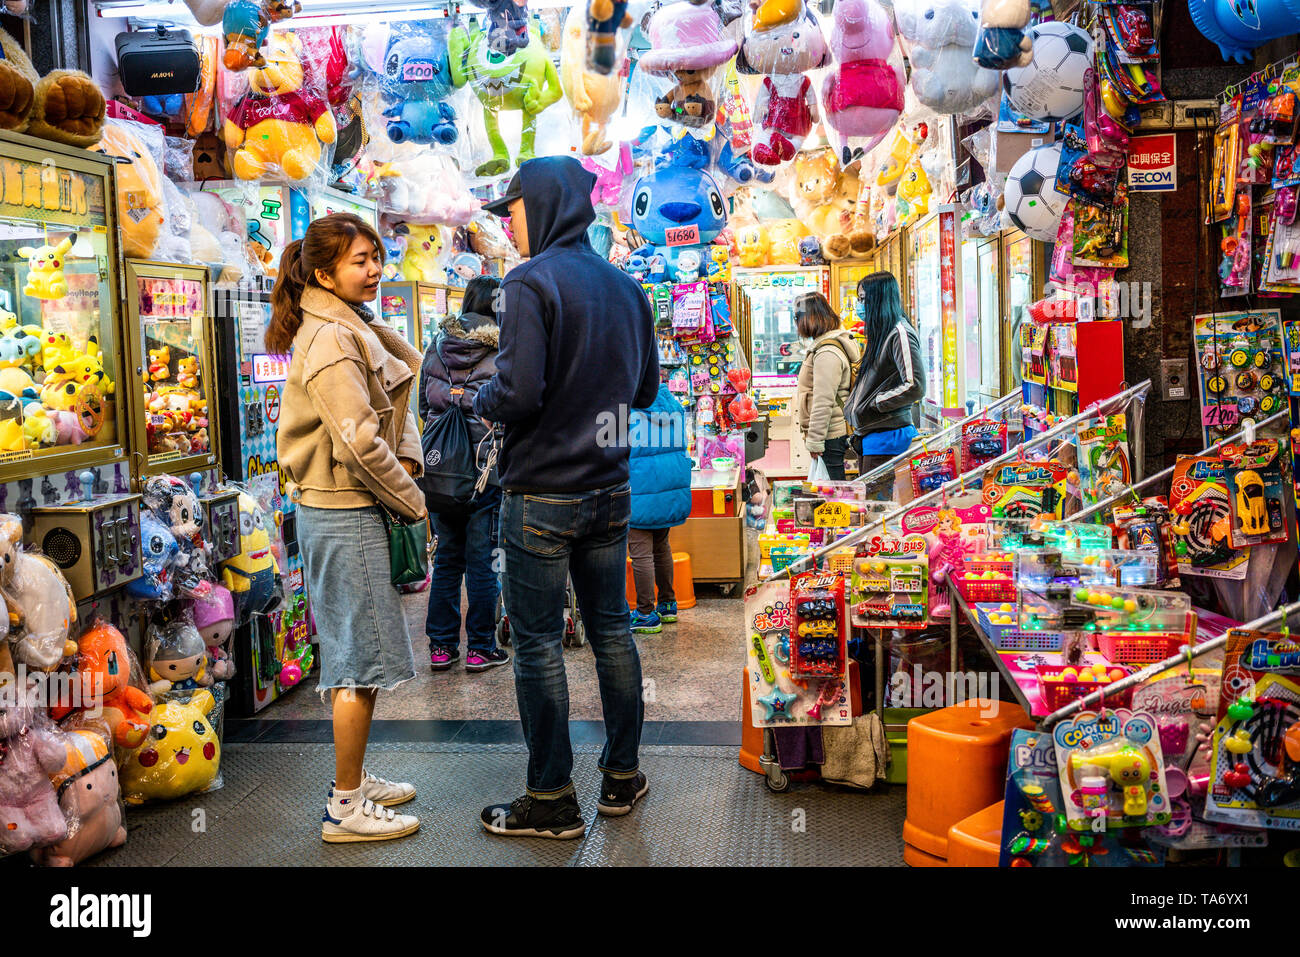 13 February 2018, Taipei Taiwan : Young Asian adult couple on the porch of a colorful toys and games shop in Taipei Taiwan - Stock Image